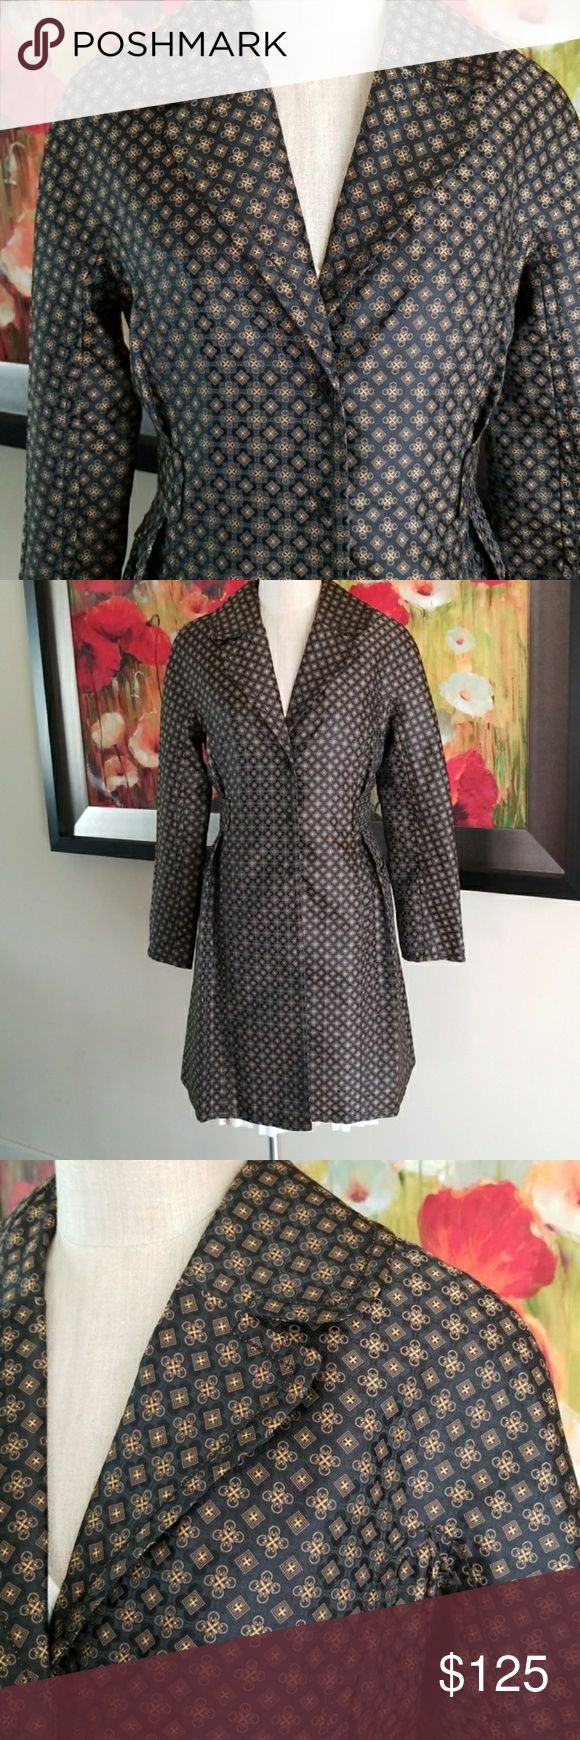 "Leon Max Patterned Raincoat, Sz. 8 New, with Tags, never worn. Sz. 8.  *Water resistant material keeps you dry and stylish *Pattern is a gorgeous mix of Black/Brown/Gold that shimmers in the light.  *2 front pockets *Flattering pleated waist  36.5"" long from shoulder to hem 23.5"" sleeve from shoulder to cuff  MSRP $398 Leon Max Jackets & Coats Trench Coats"